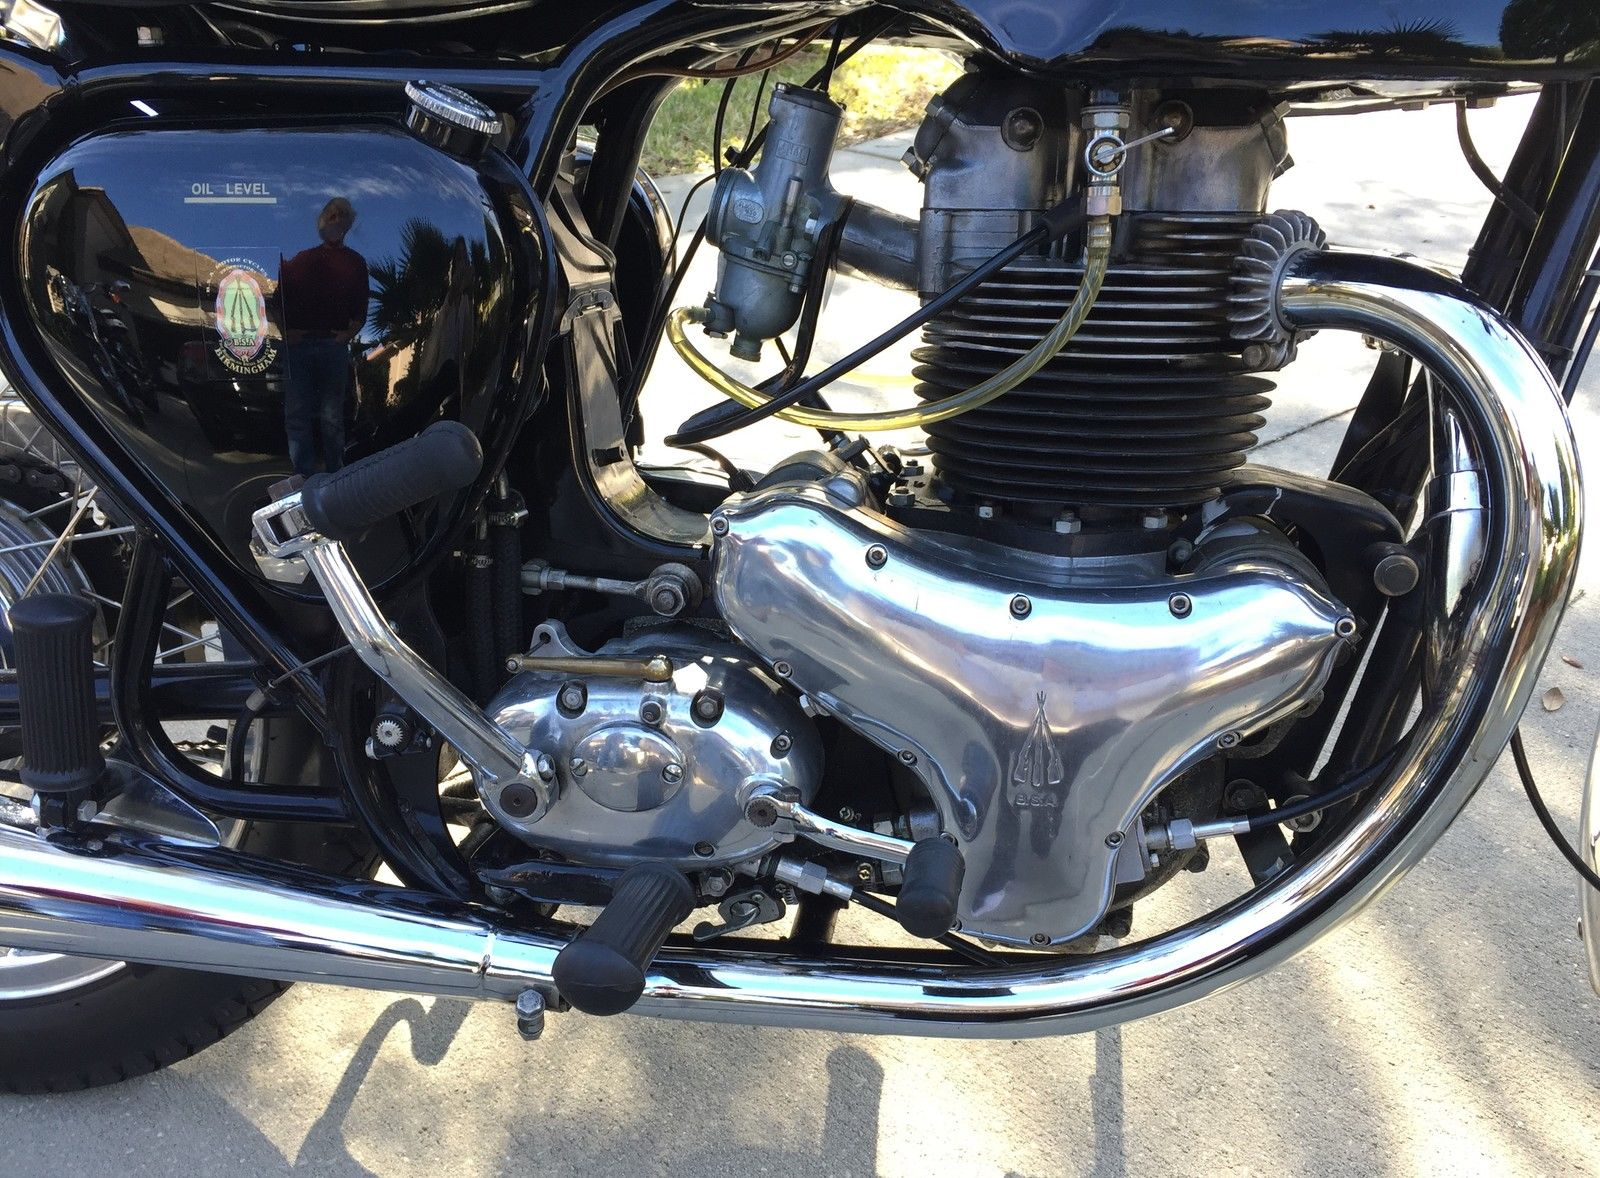 BSA A10 Super Rocket - 1963 - Motor and Transmission, Timing Cover and Kick Start.